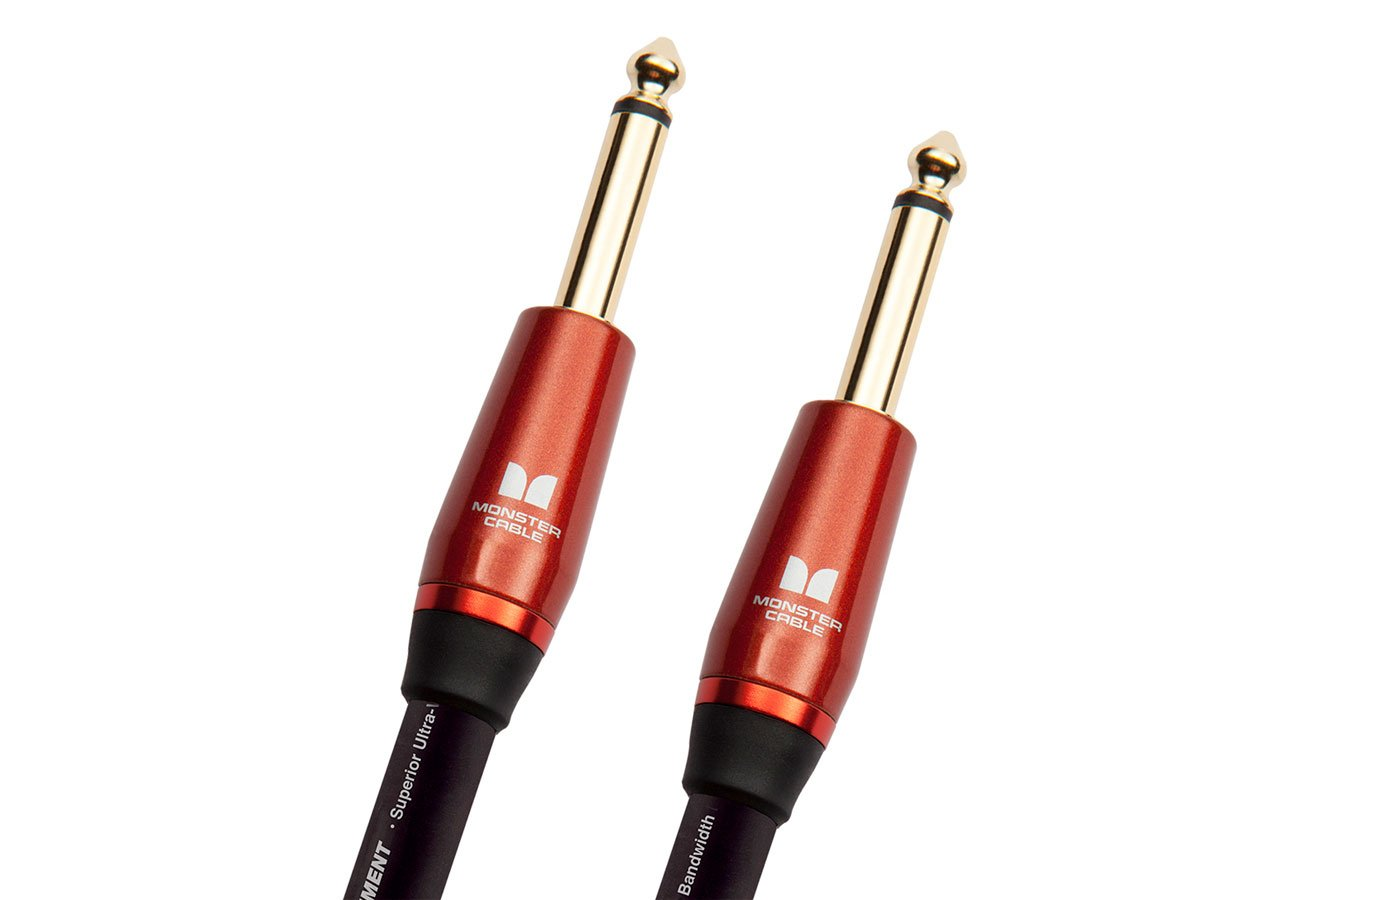 Monster Cable M ACST2-12 Monster アコースティック2 Series ギター用ケーブル/プラグ S-S/ケーブル長:約3.6m B00KZMF2I8 12ft S/S12ft S/S